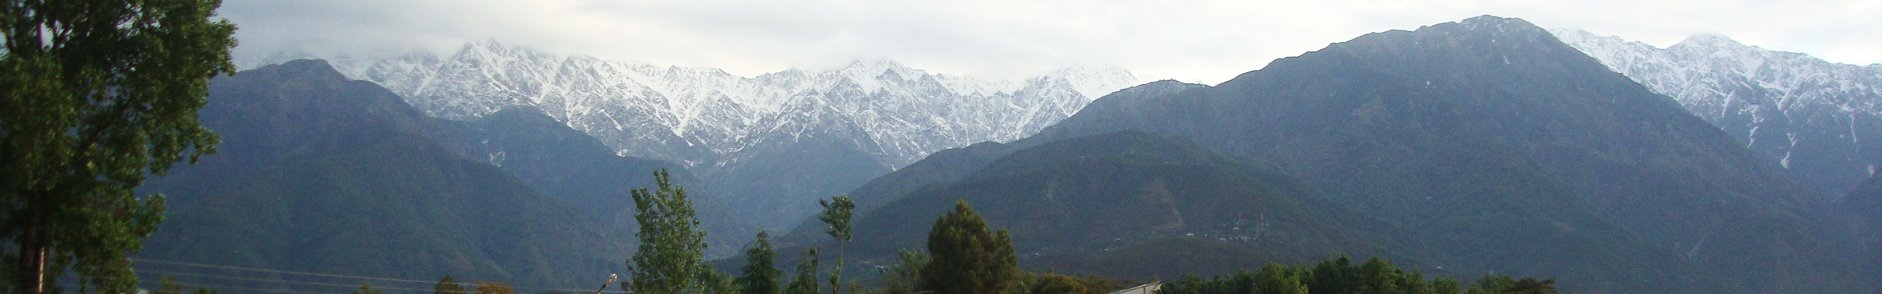 Andretta Artists Village Palampur, Himachal